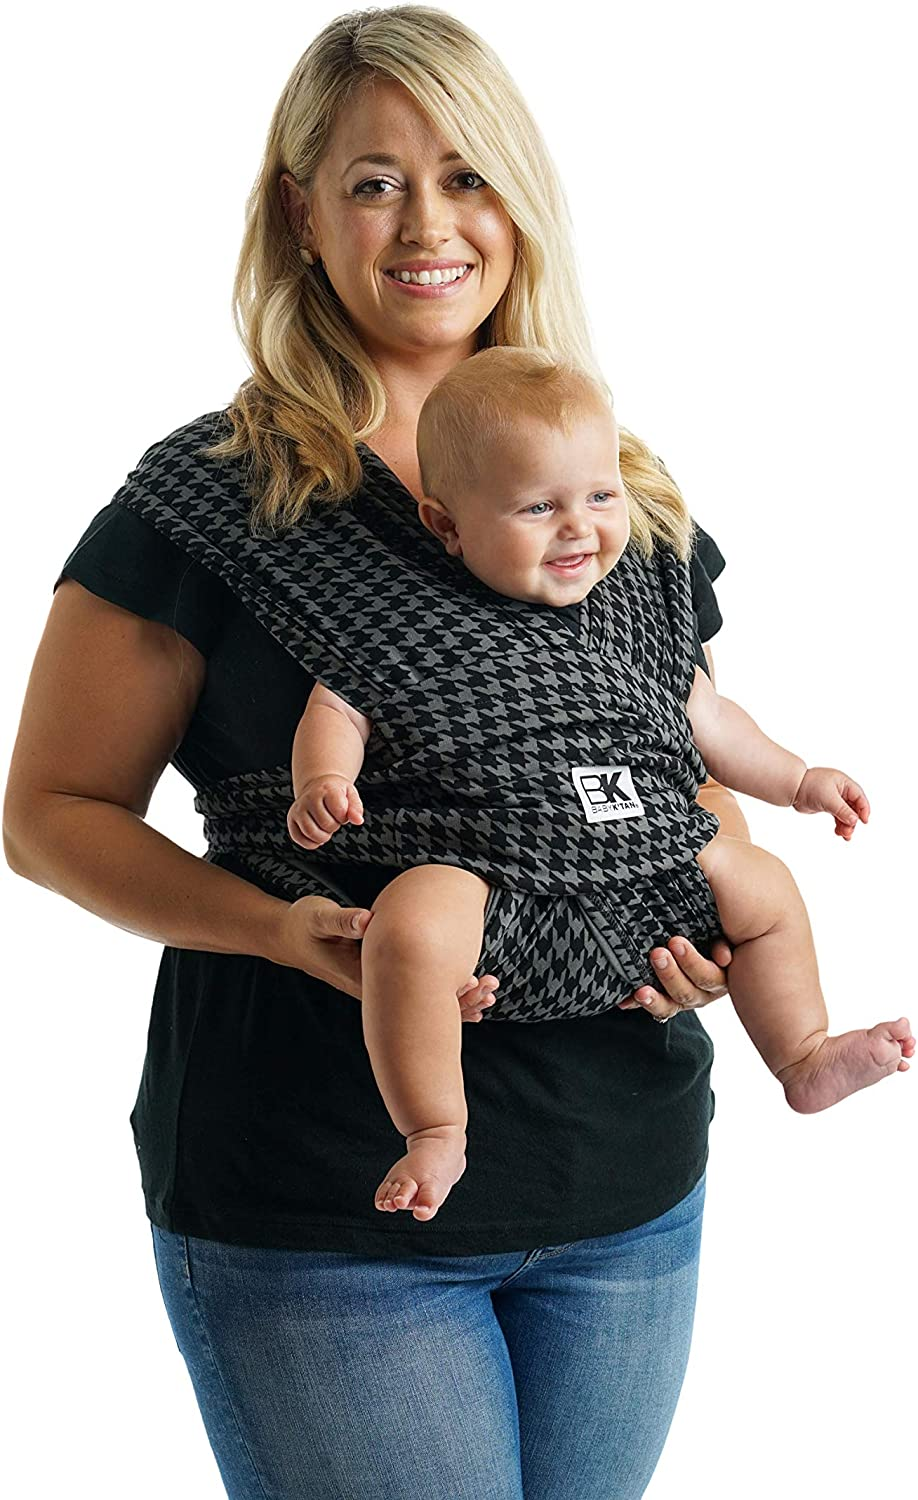 W Dress 10-14 // M Jacket 39-42 Carry Newborn up to 35 lbs Houndstooth No Rings or Buckles Simple Wrap Holder for Babywearing Infant and Child Sling Baby K/'tan Print Baby Wrap Carrier M